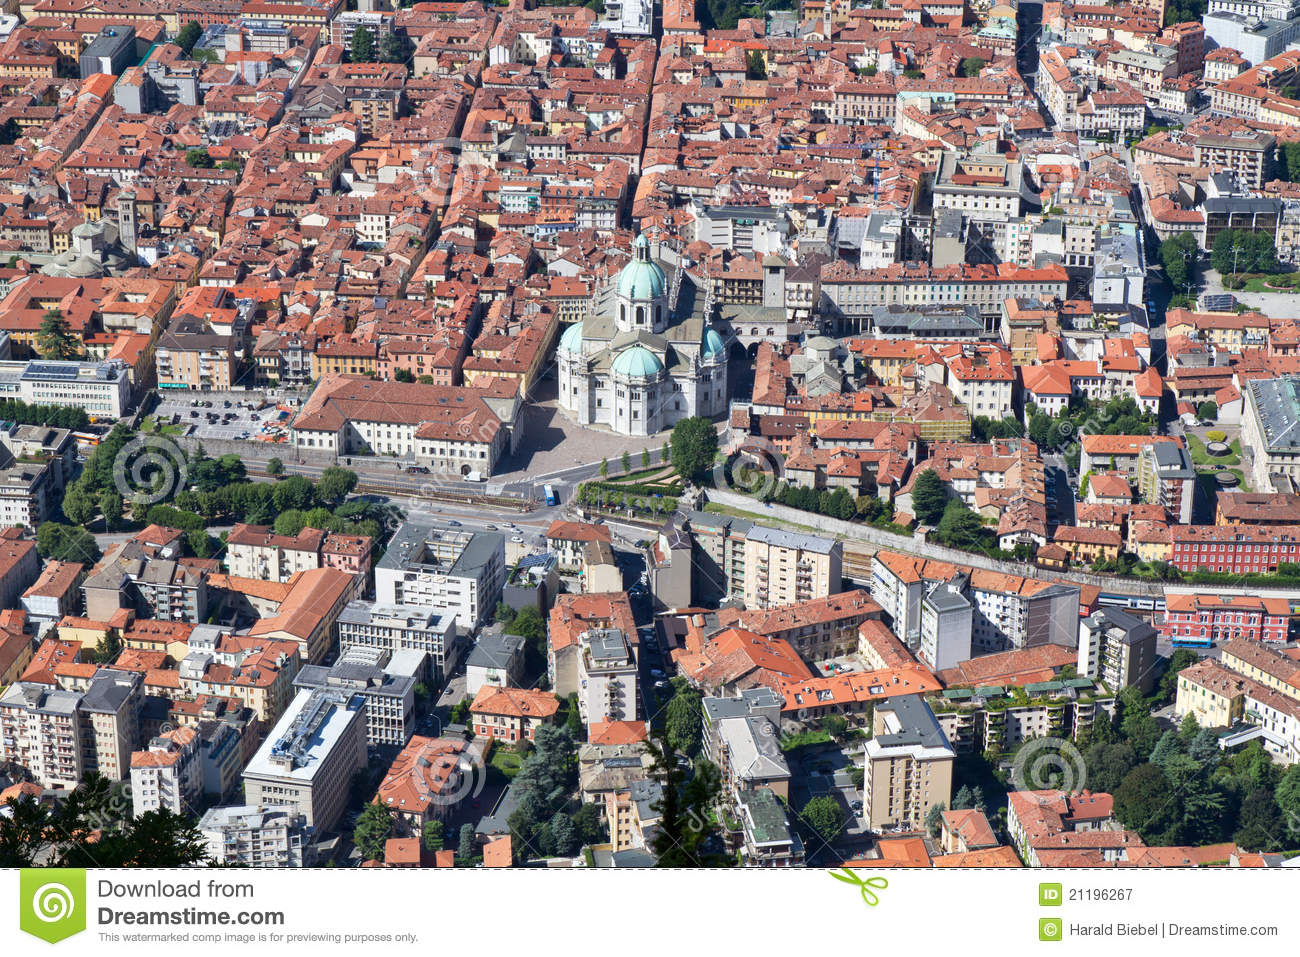 The town of Como, Italy, from above